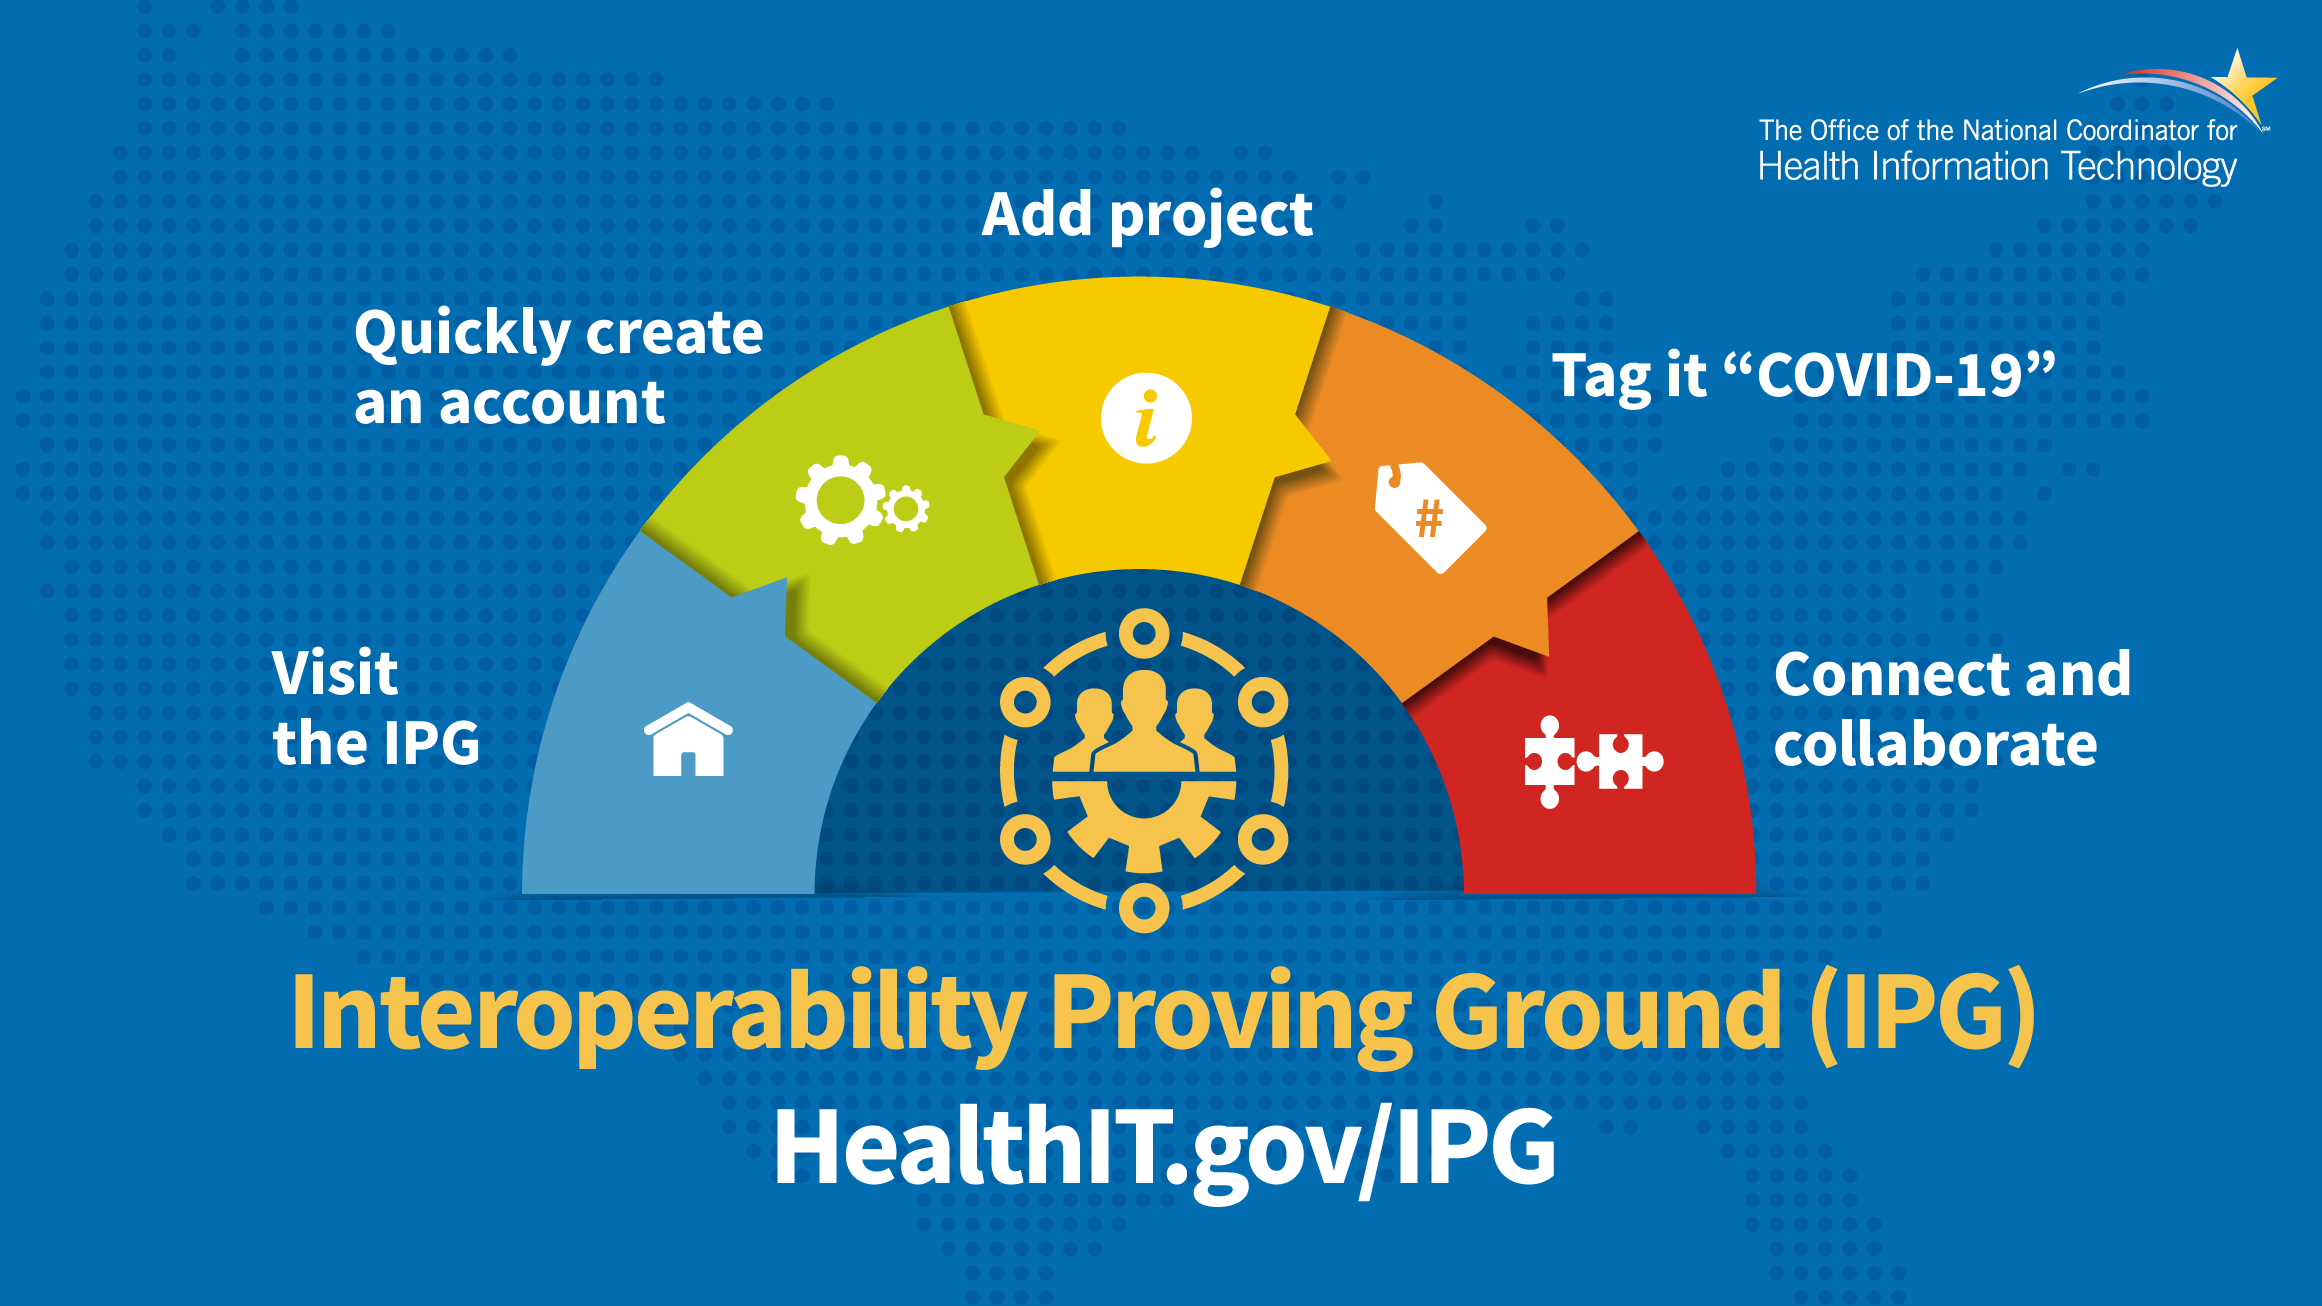 "Image showing the instructions for adding an IPG project to healthit.gov/ipg. Step 1: visit healthit.gov/ipg. Step 2: Create and Account, Step 3: Add your project. Step 4: Tag it ""Covid-19"". Step 5 connect and colaborate!"